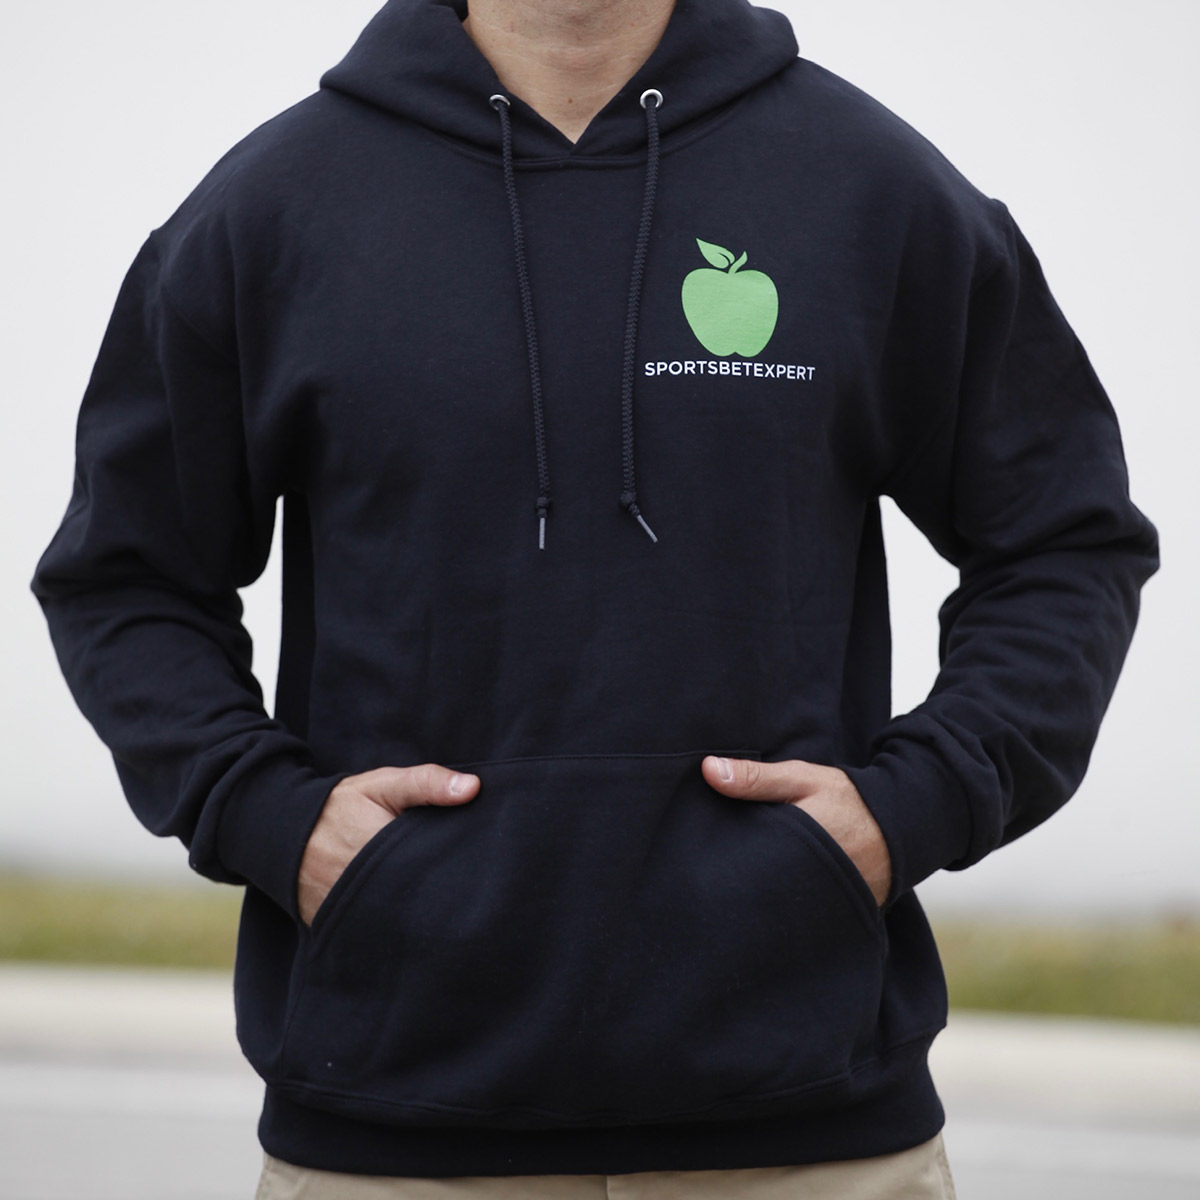 You Got To Have Brains But You Got To Have Balls - Black Hooded Sweatshirt - Front with Logo